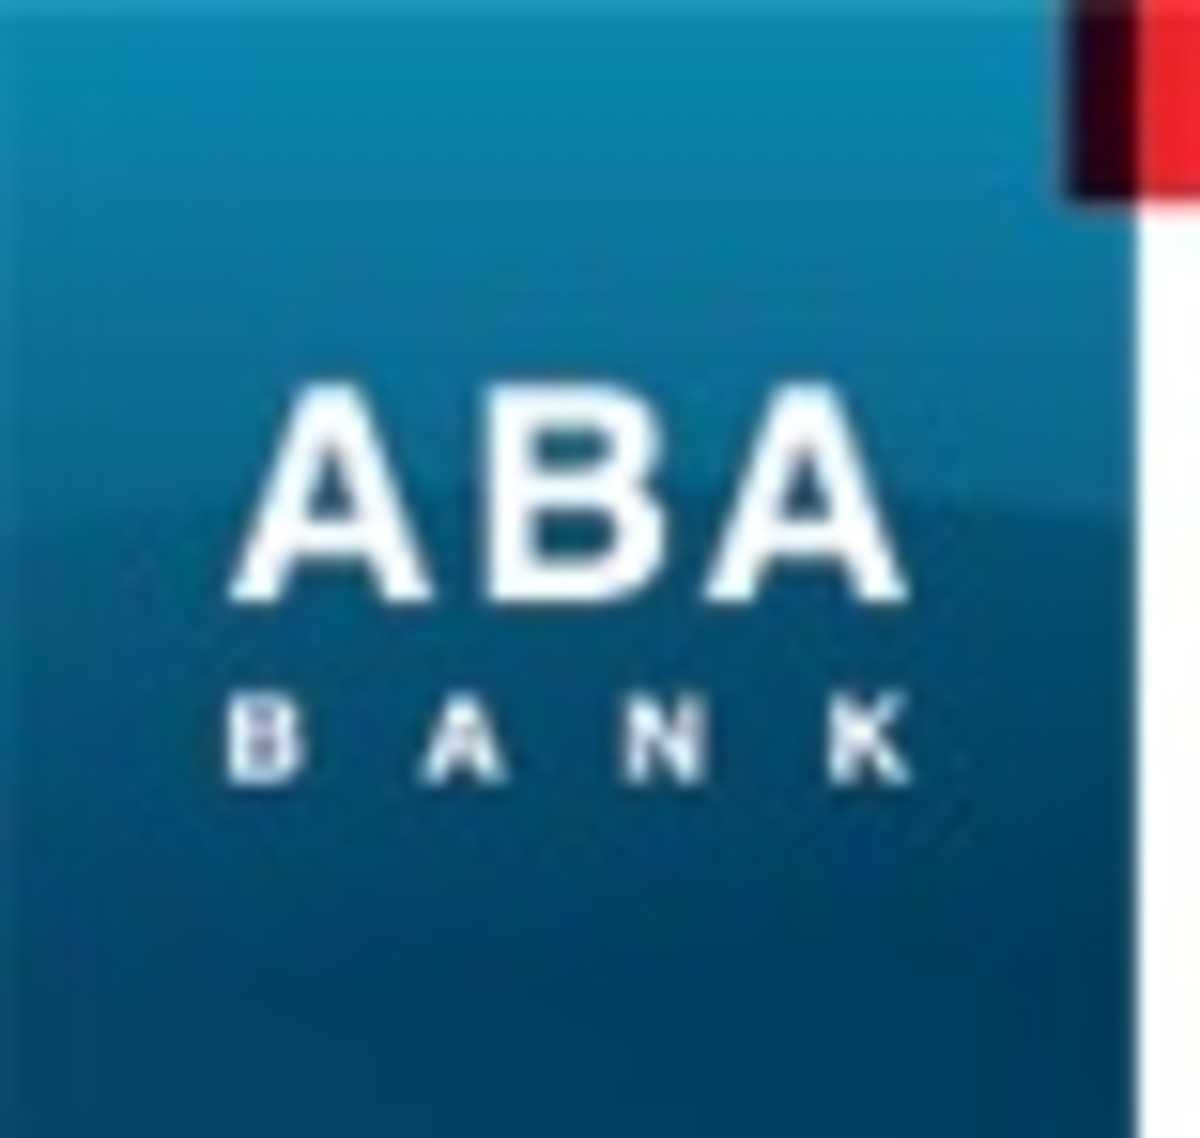 Advanced Bank of Asia Ltd.